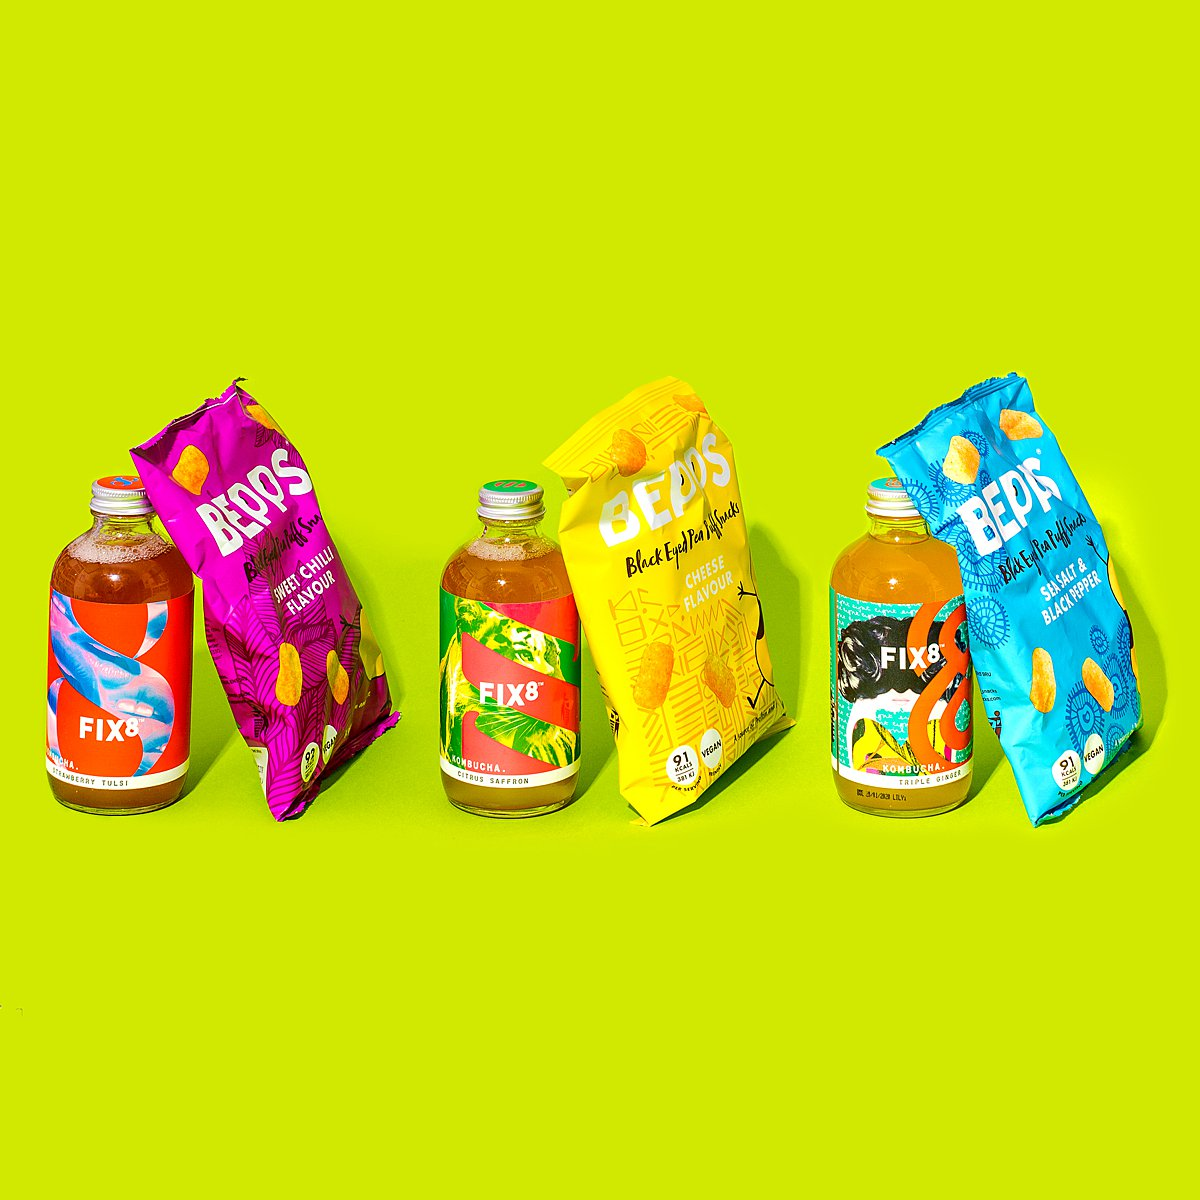 Colourful content creation for Bepps snacks. Styled stills and lifestyle product photography by Marianne Taylor.